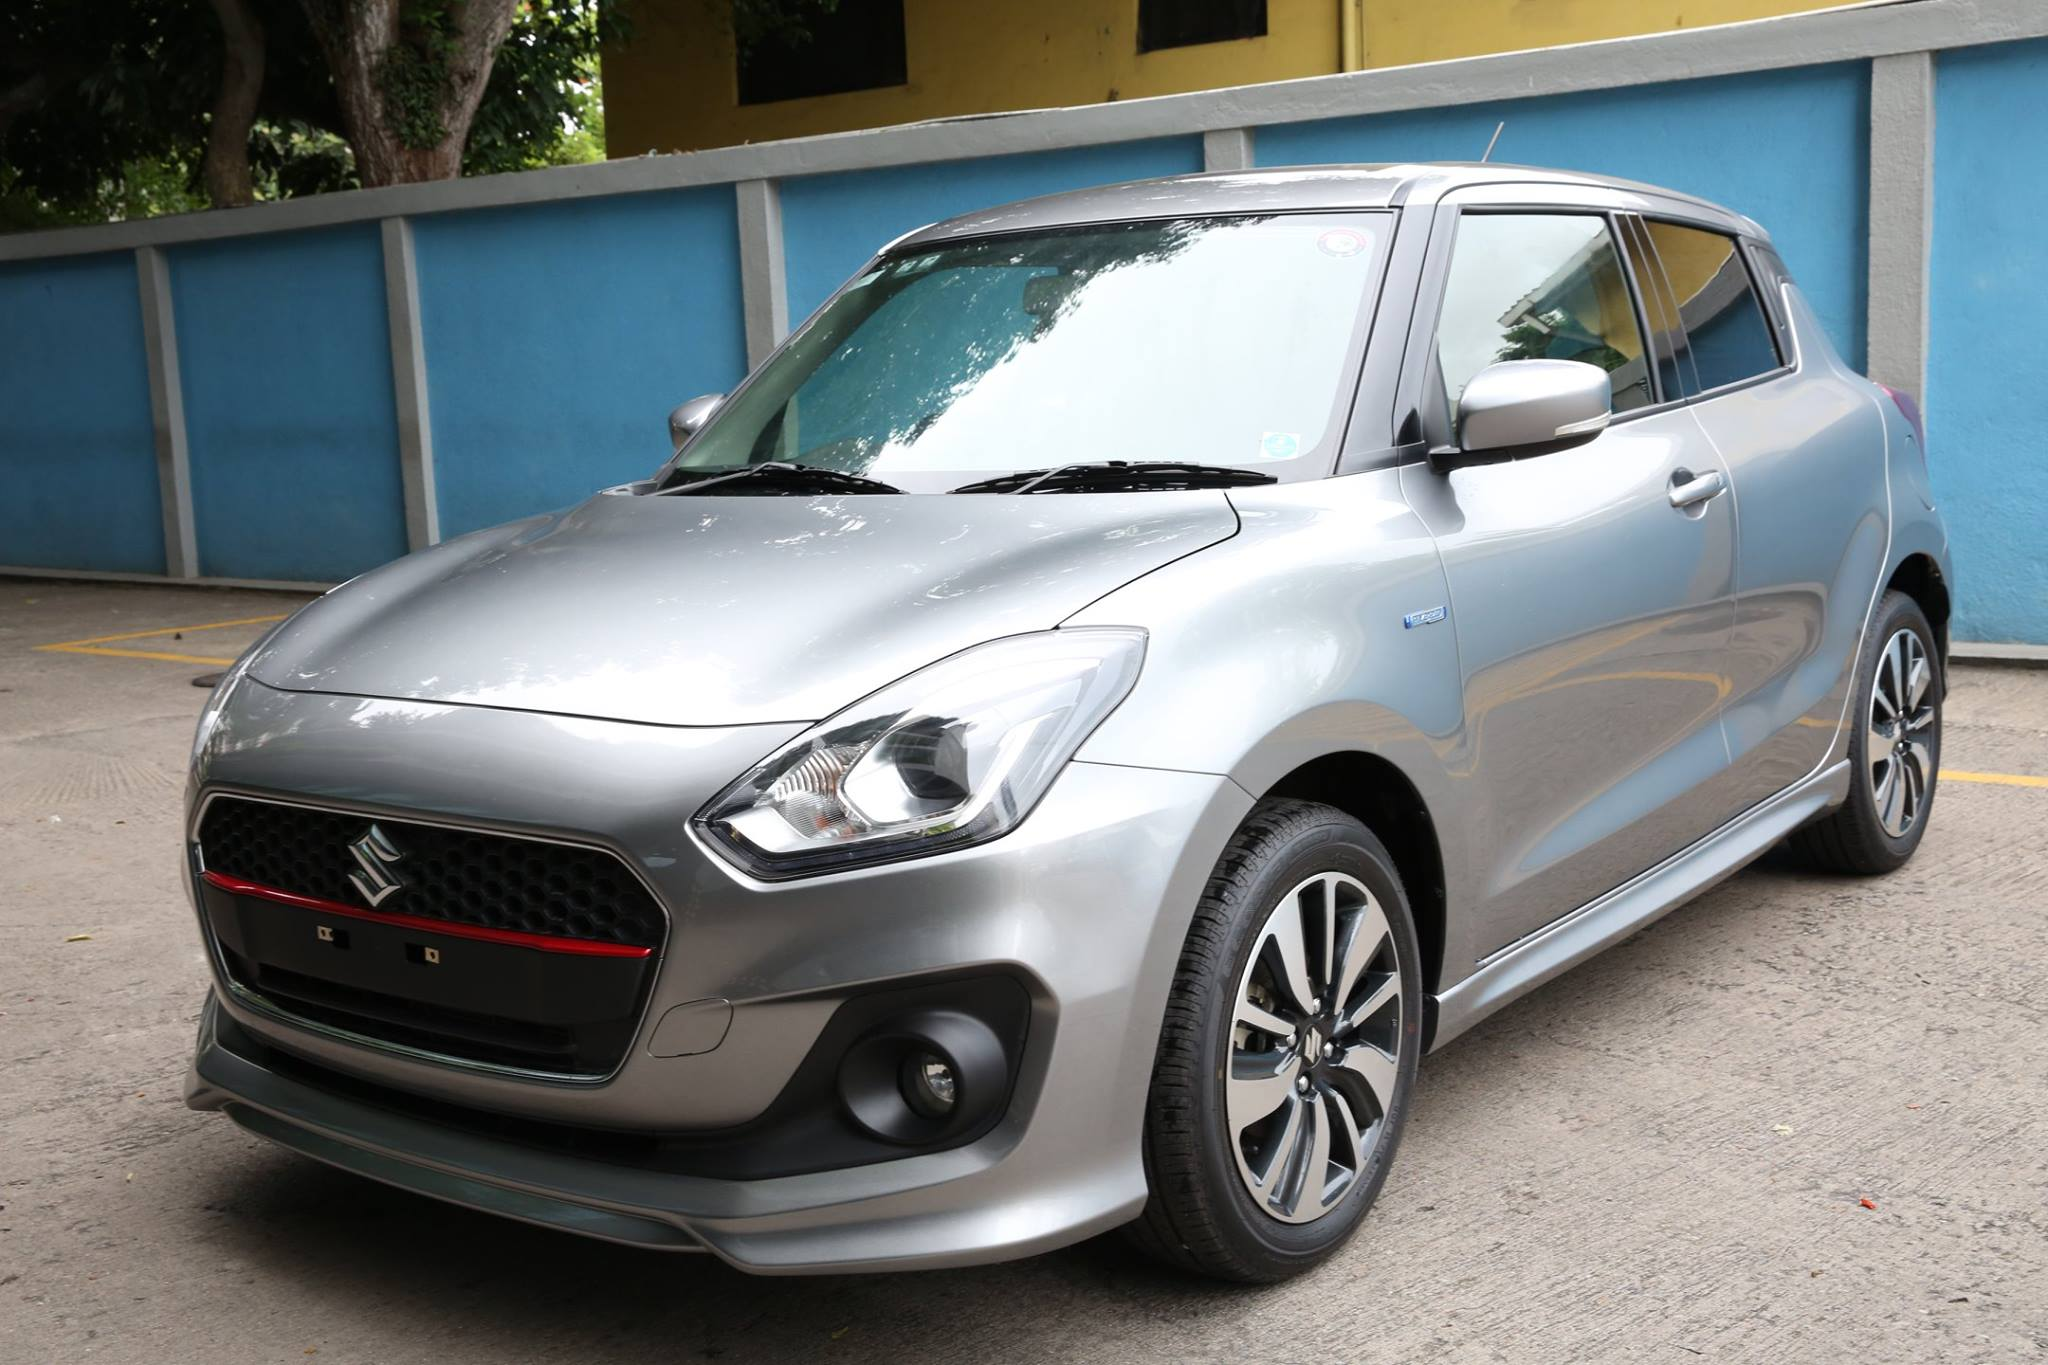 Maruti swift photo - 3